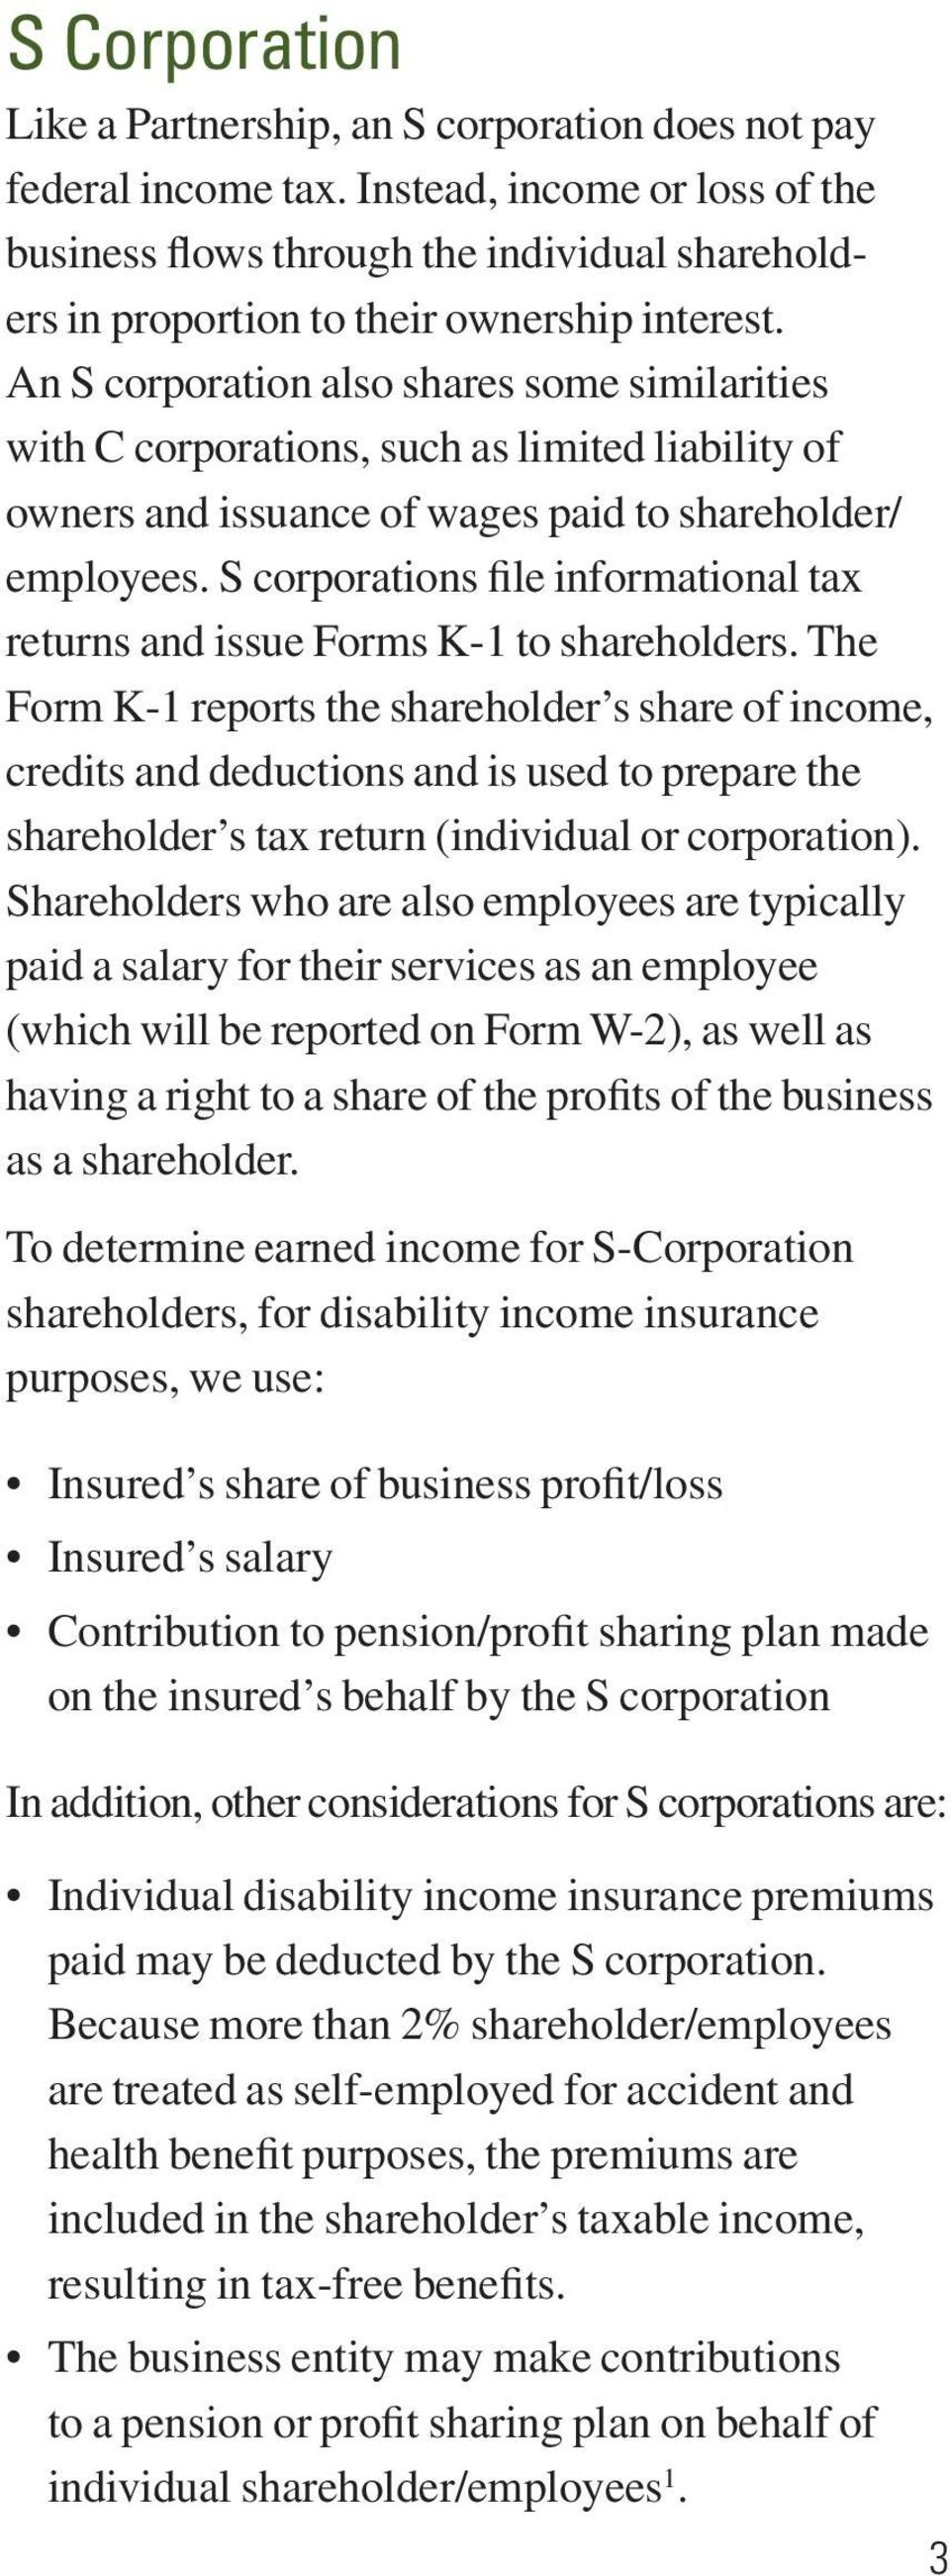 An S corporation also shares some similarities with C corporations, such as limited liability of owners and issuance of wages paid to shareholder/ employees.